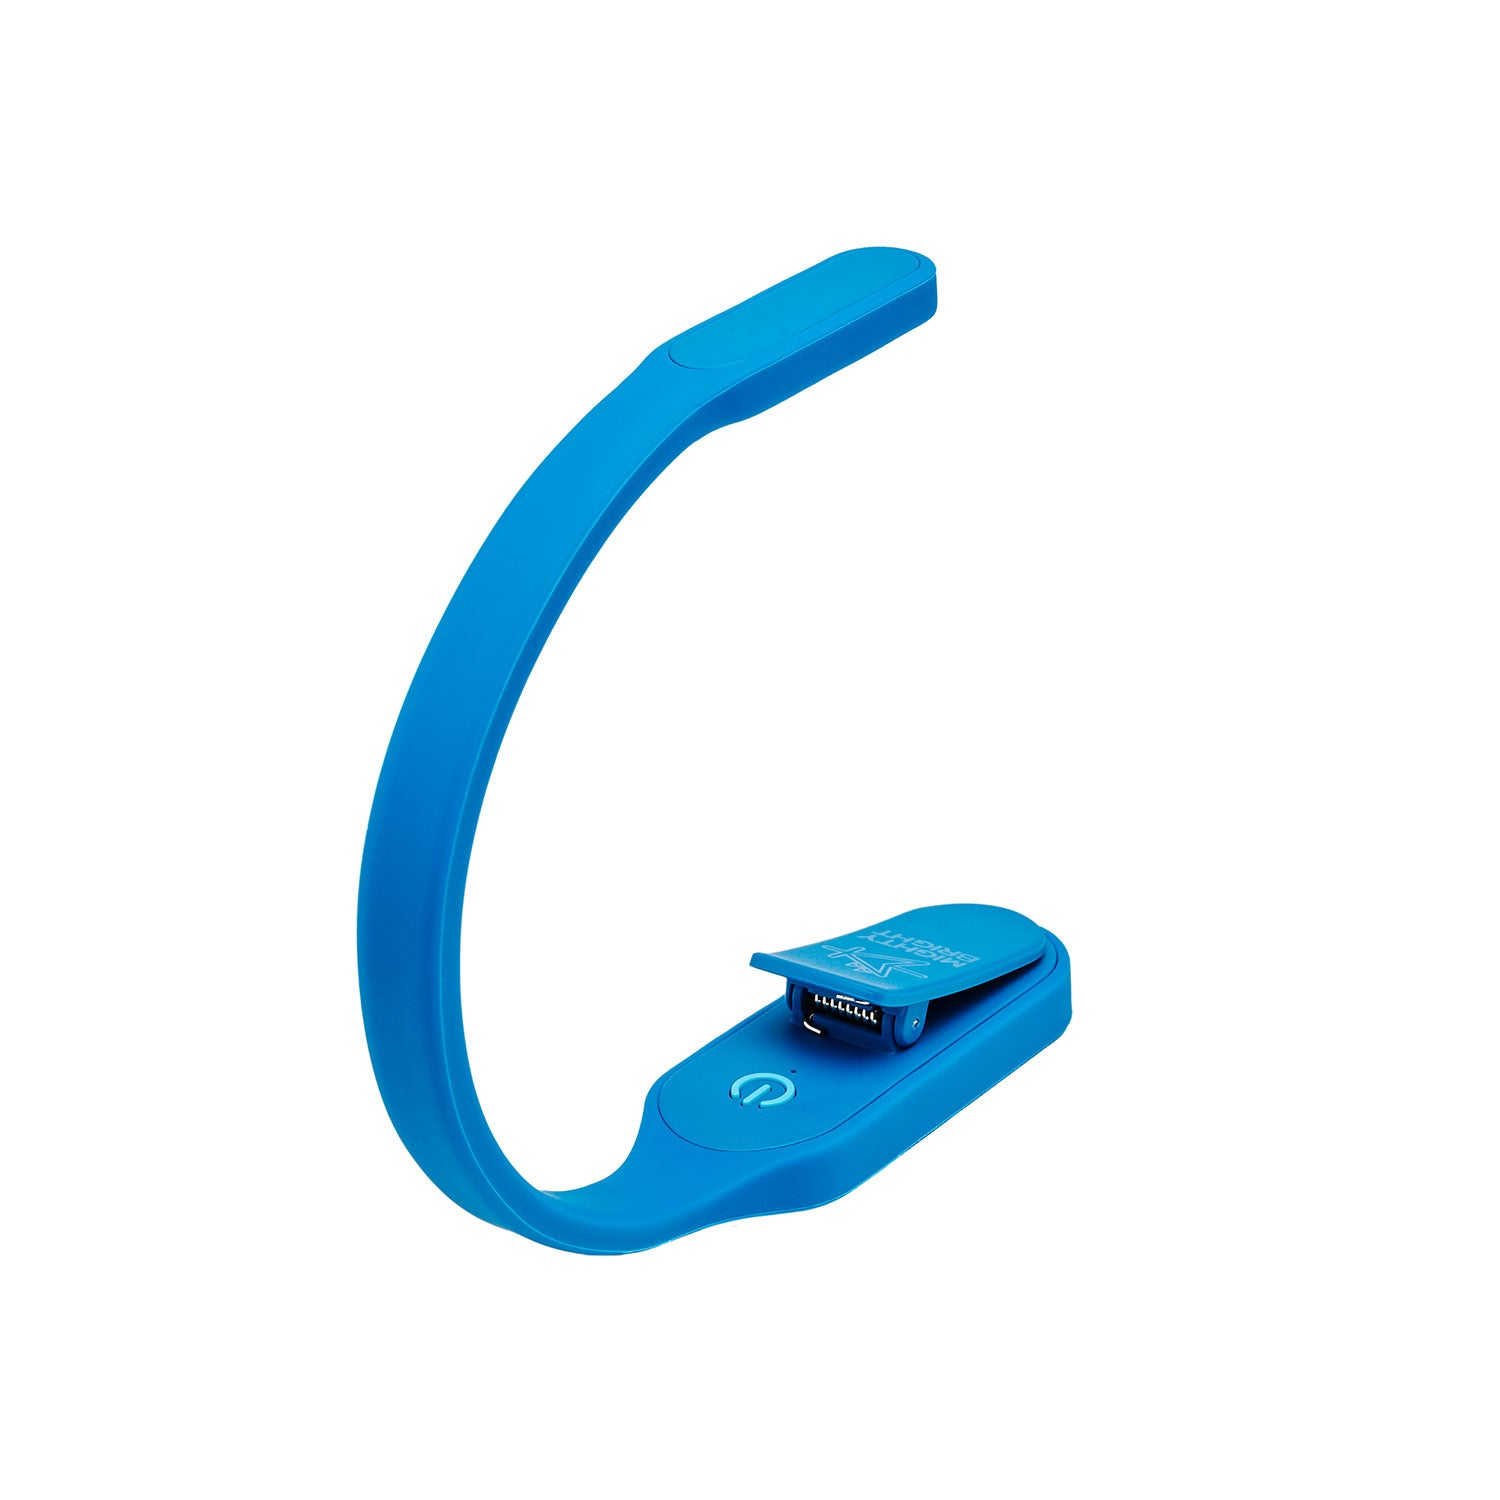 The Recharge Rechargeable Book Light with USB Power Cable by Mighty Bright - rear view, blue